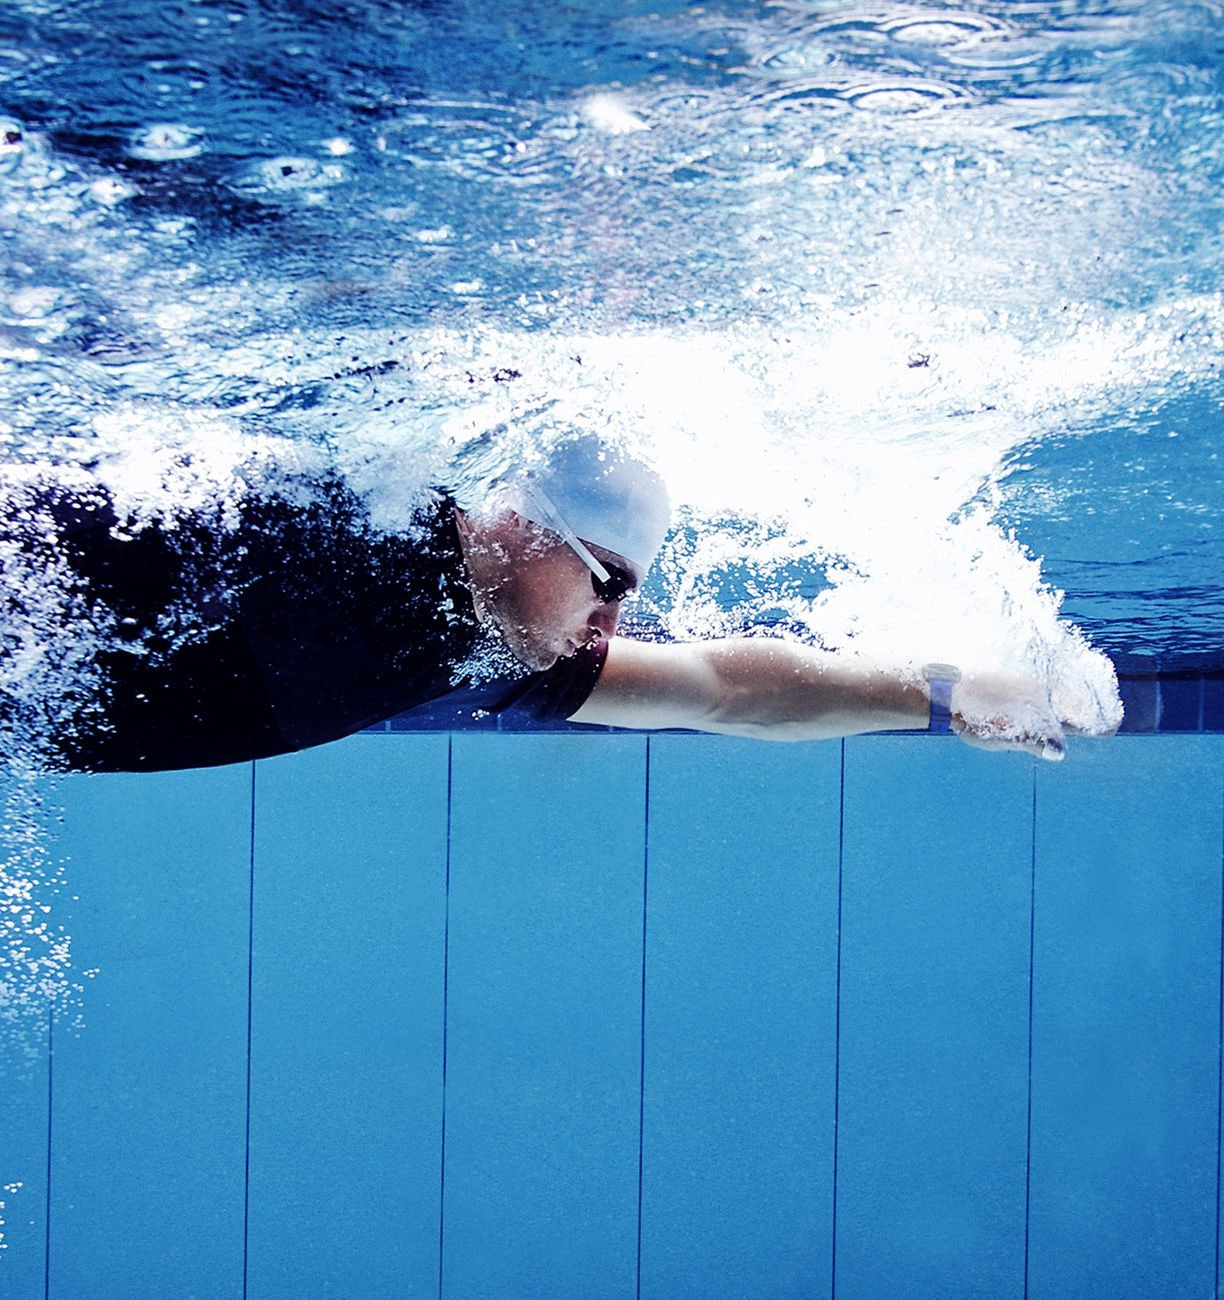 Image of man swimming in pool while wearing the Gear Sport